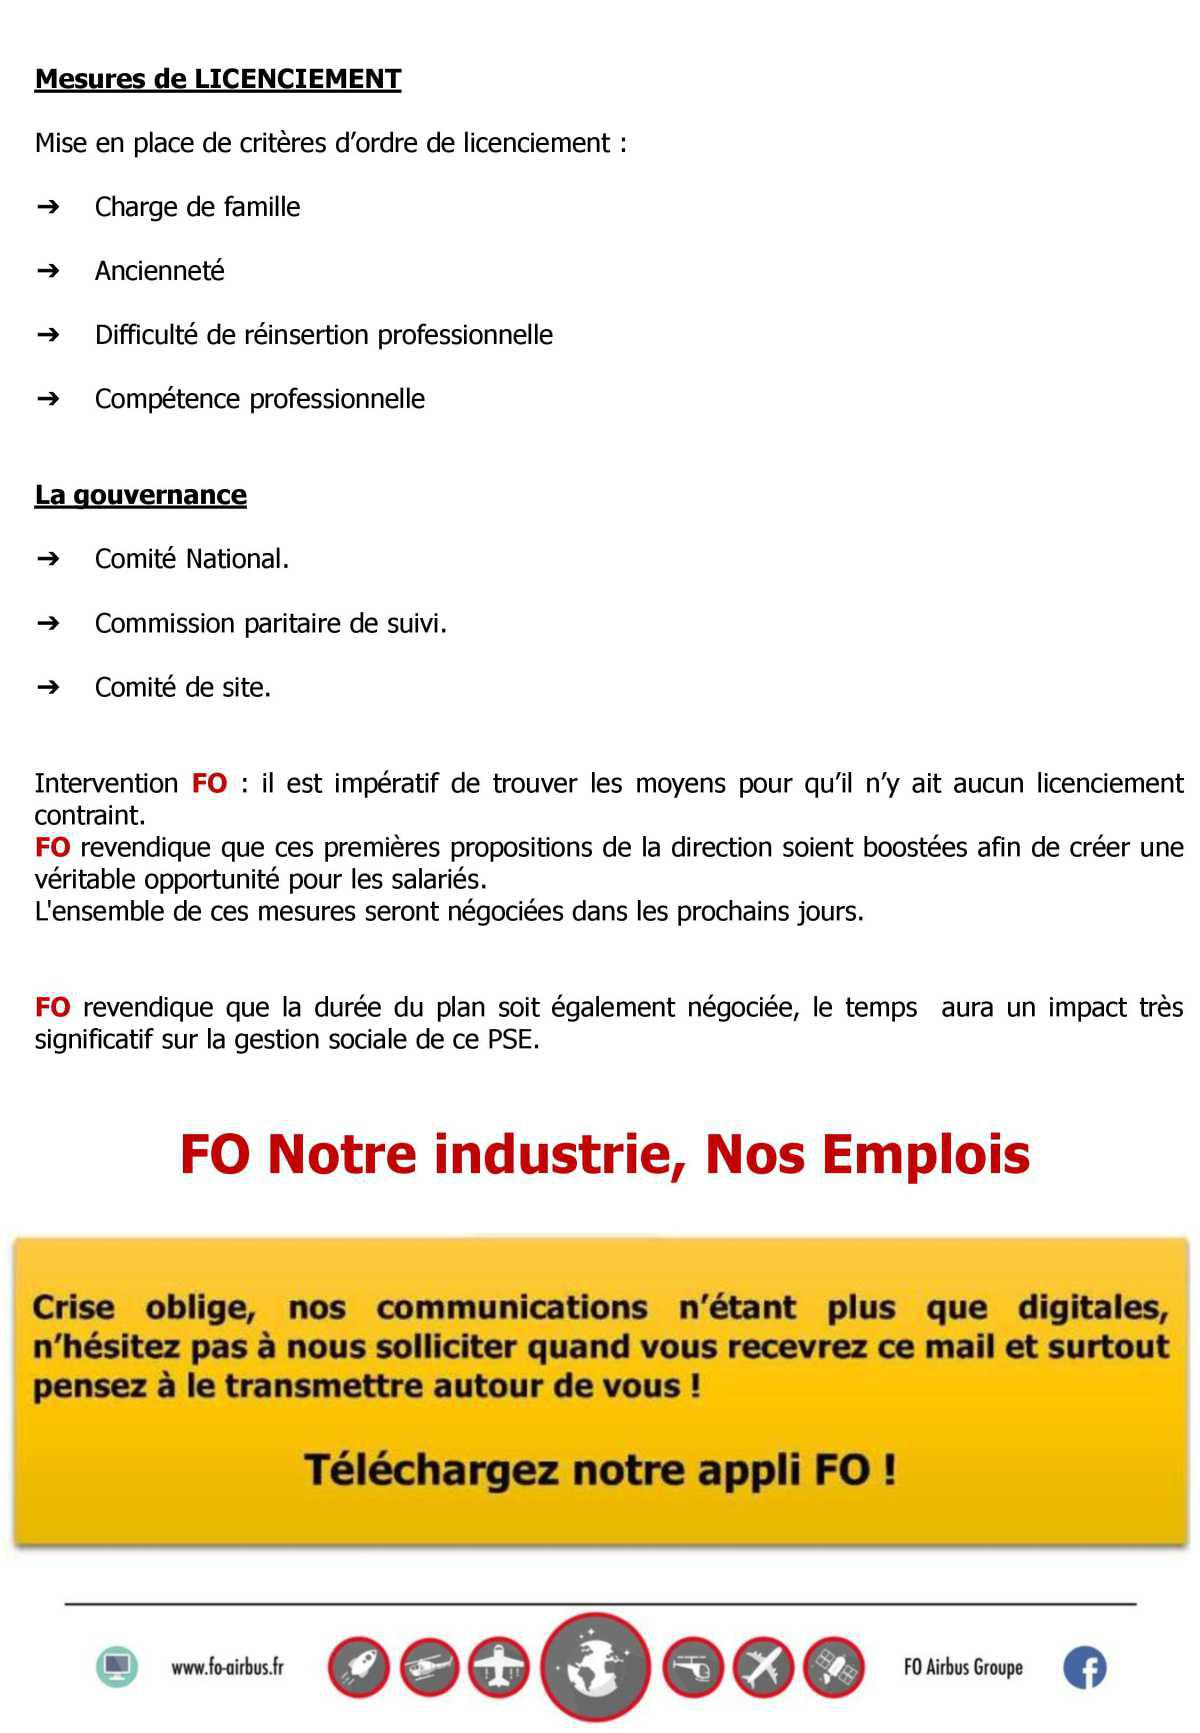 Comité Groupe Airbus France